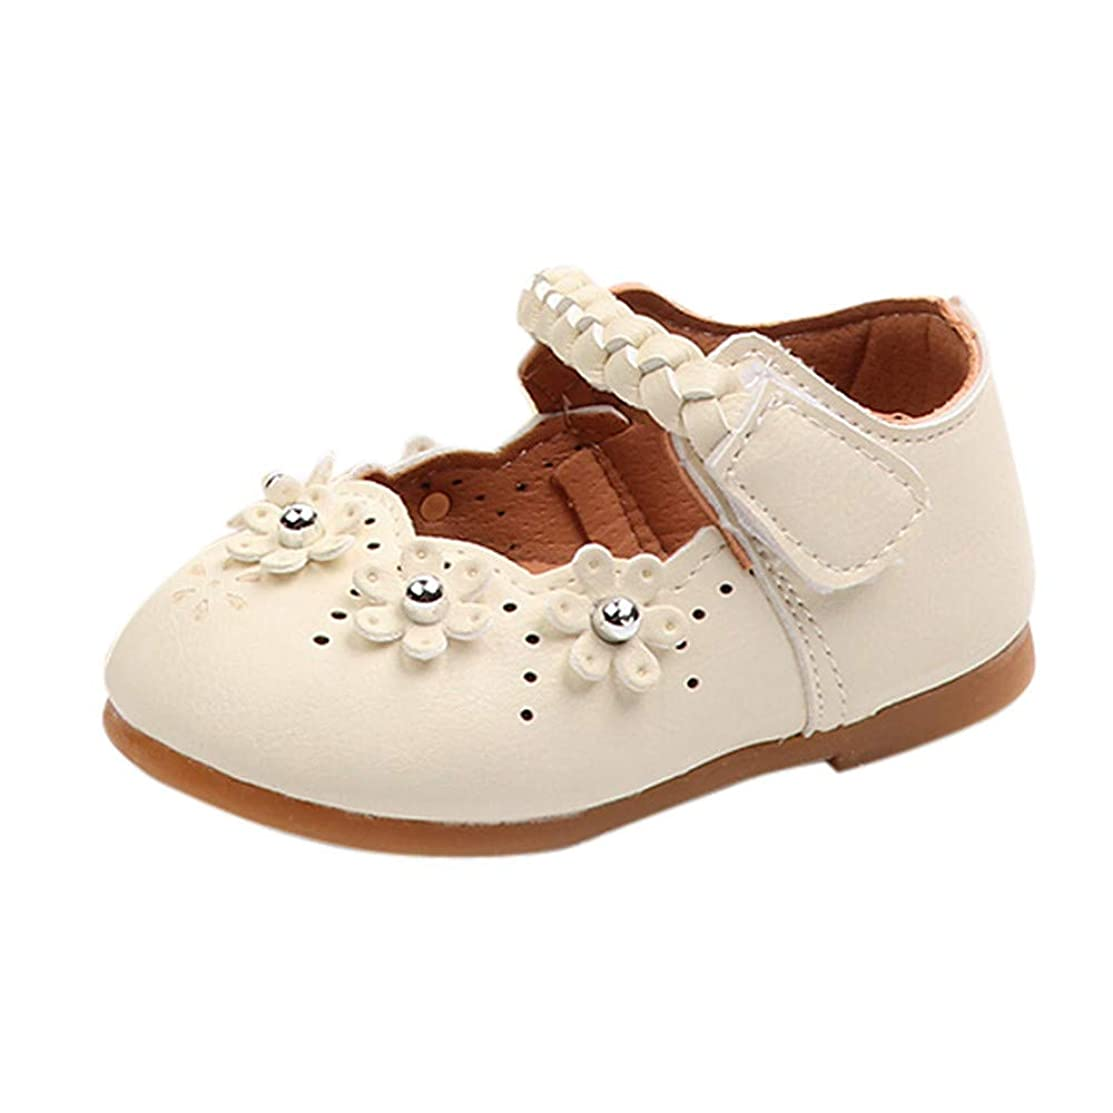 Infant Baby Toddler Girls Princess Shoes for 0-4 Years Old,Cute Kids Flower Leather Soft Sole Flat Casual Shoes